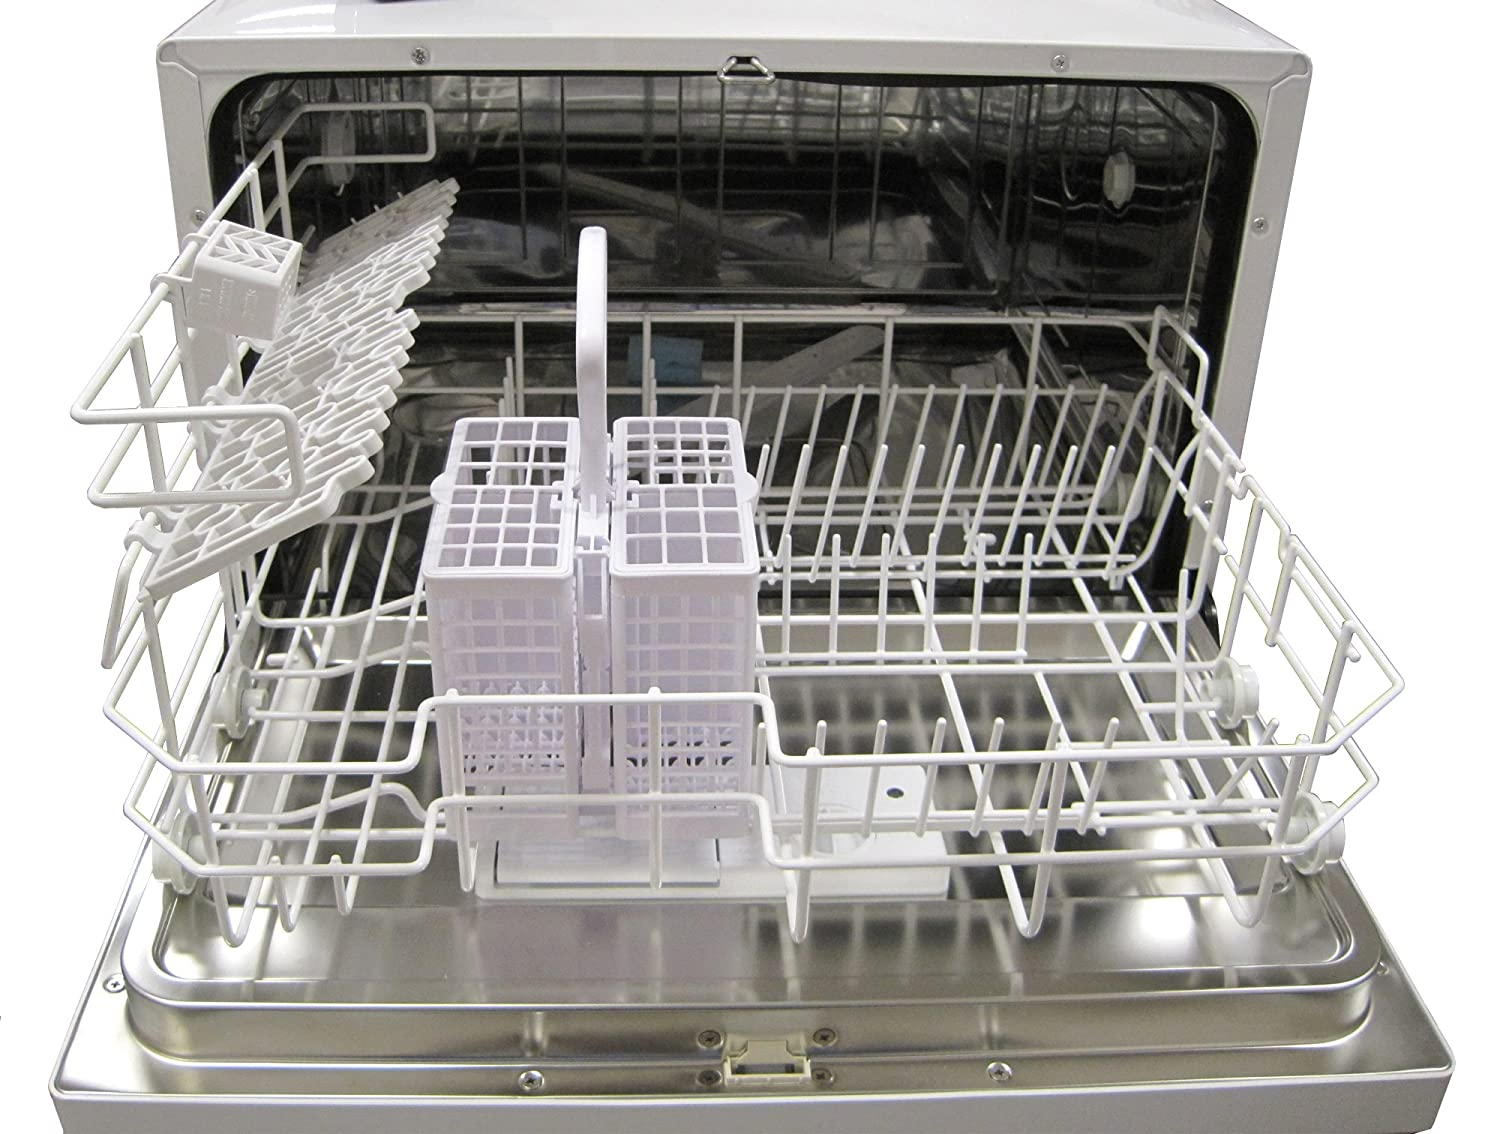 SPT Countertop Dishwasher SD-2201S – Easiest Countertop Dishwasher to Load